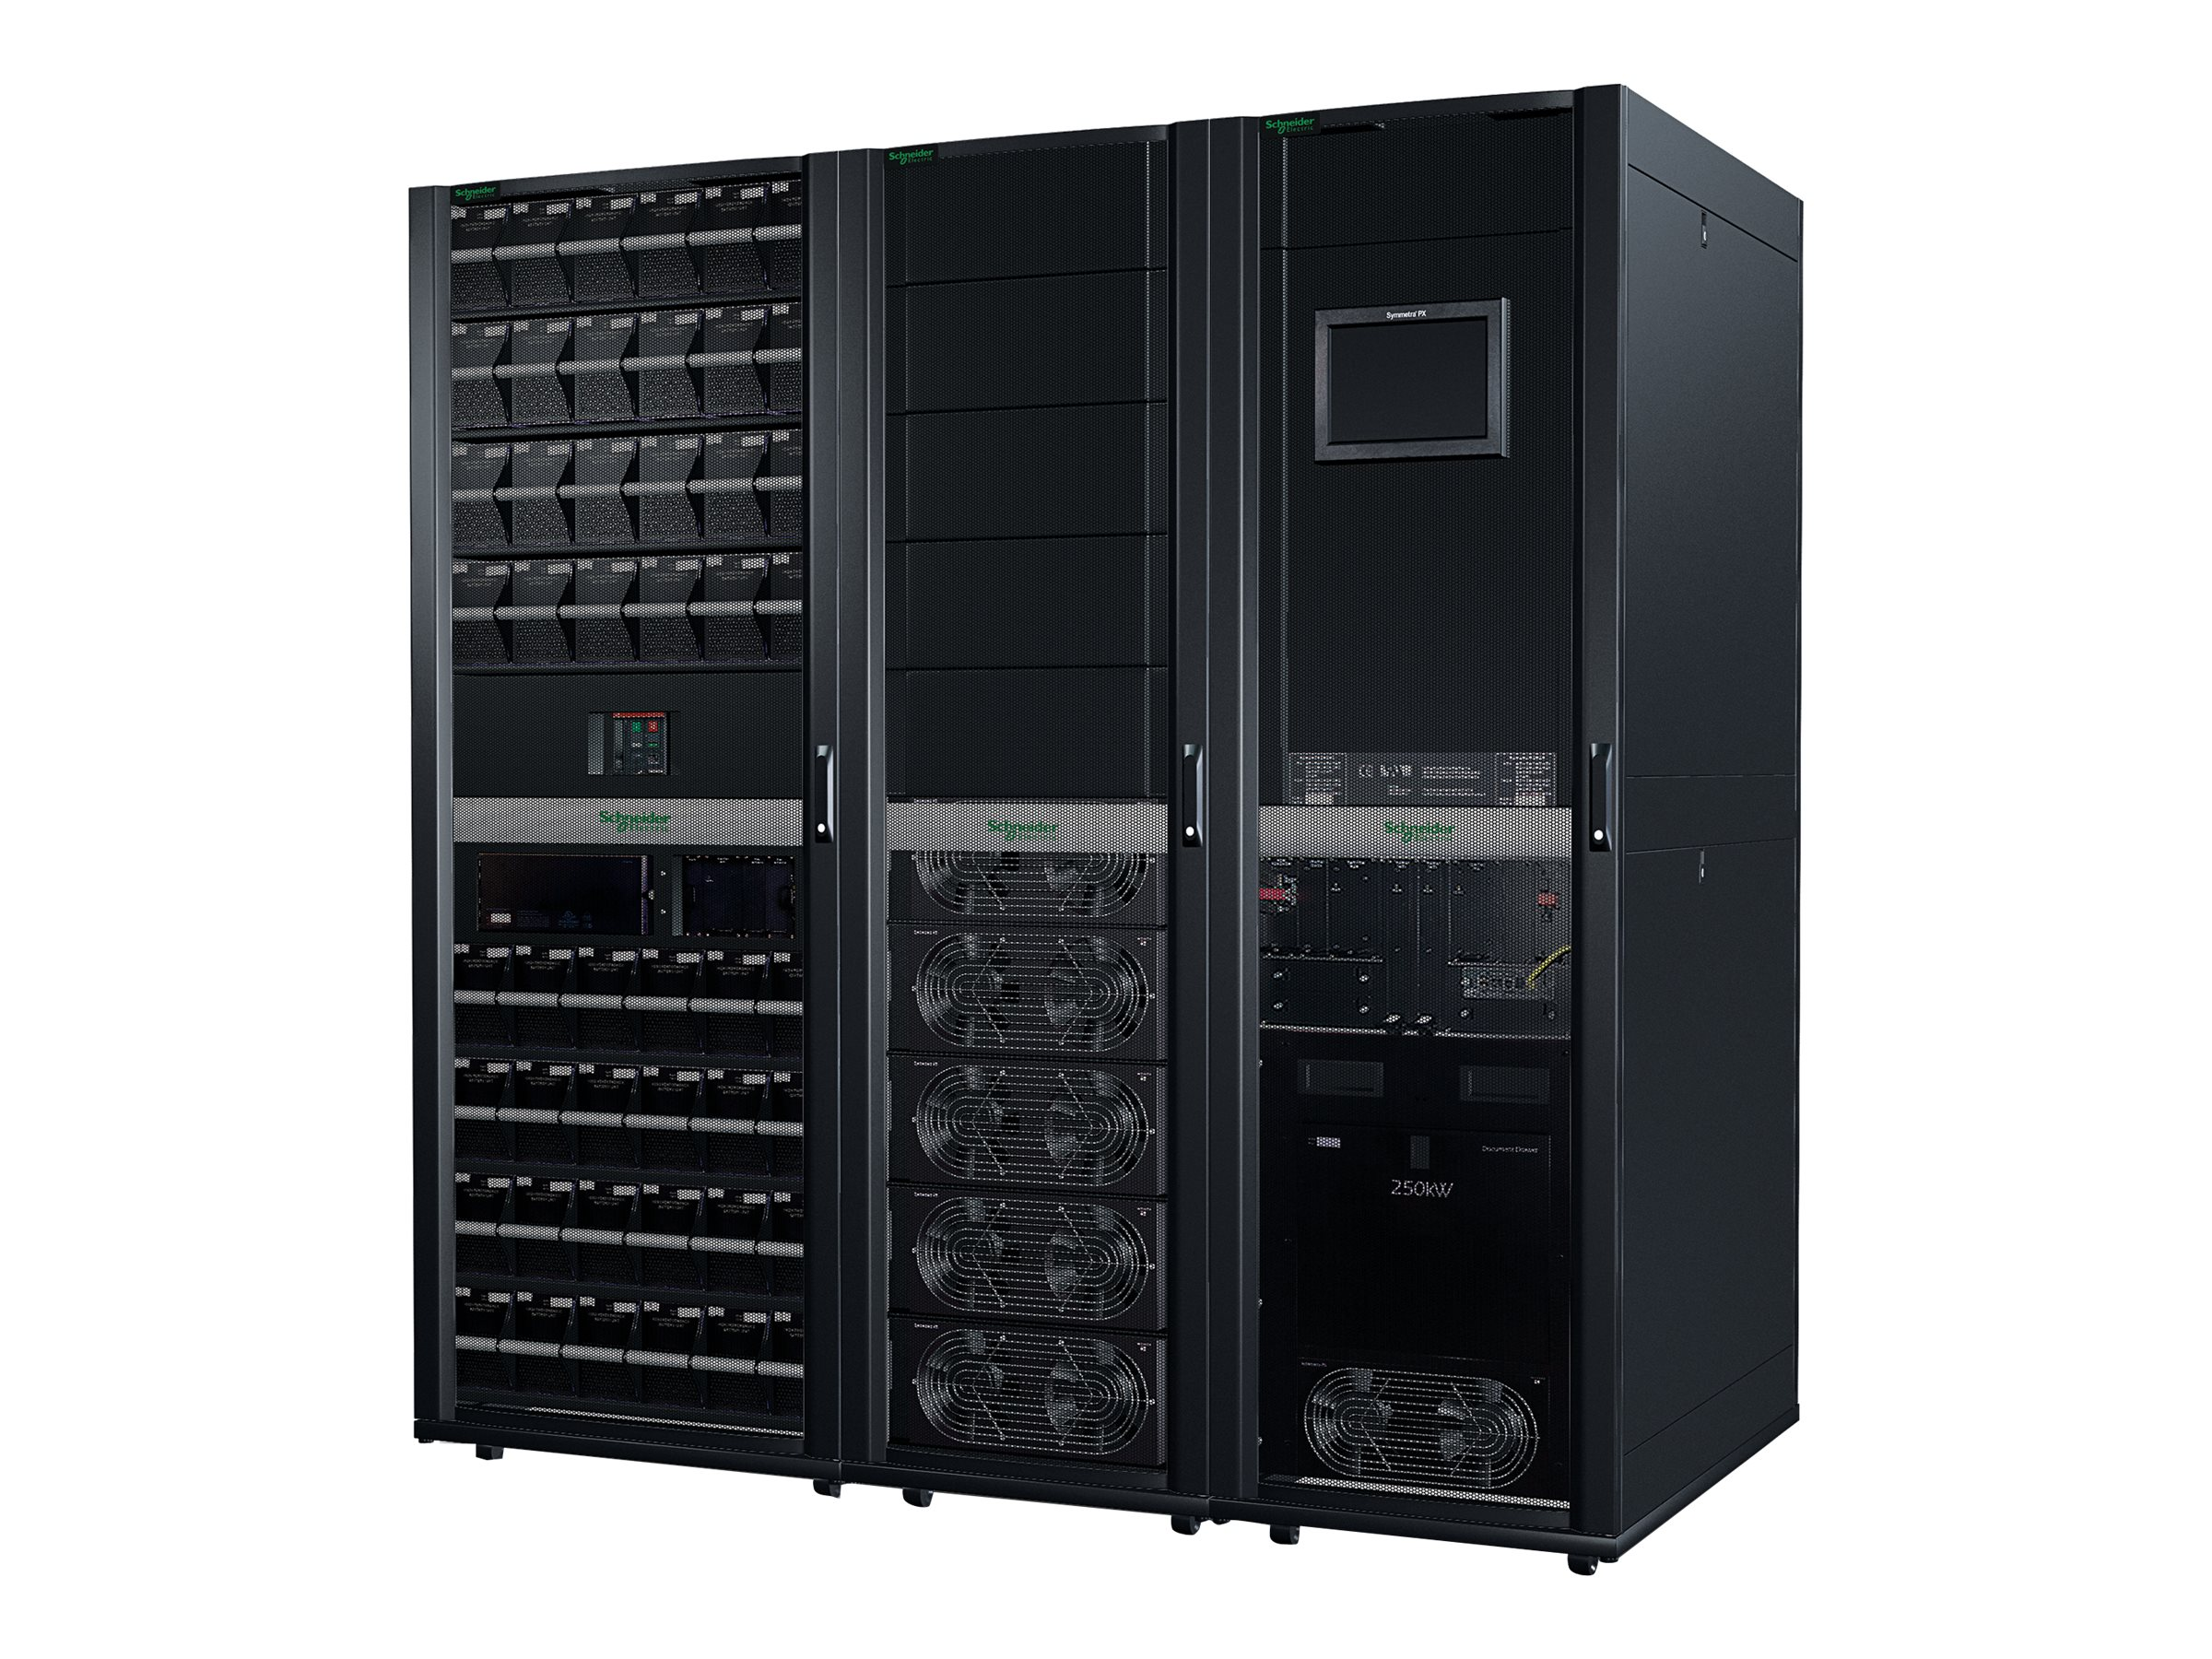 APC Symmetra PX 125kW Scalable to 250kW w o Maintenance Bypass or Distribution, Parallel Capable, SY125K250D, 13666119, Battery Backup/UPS